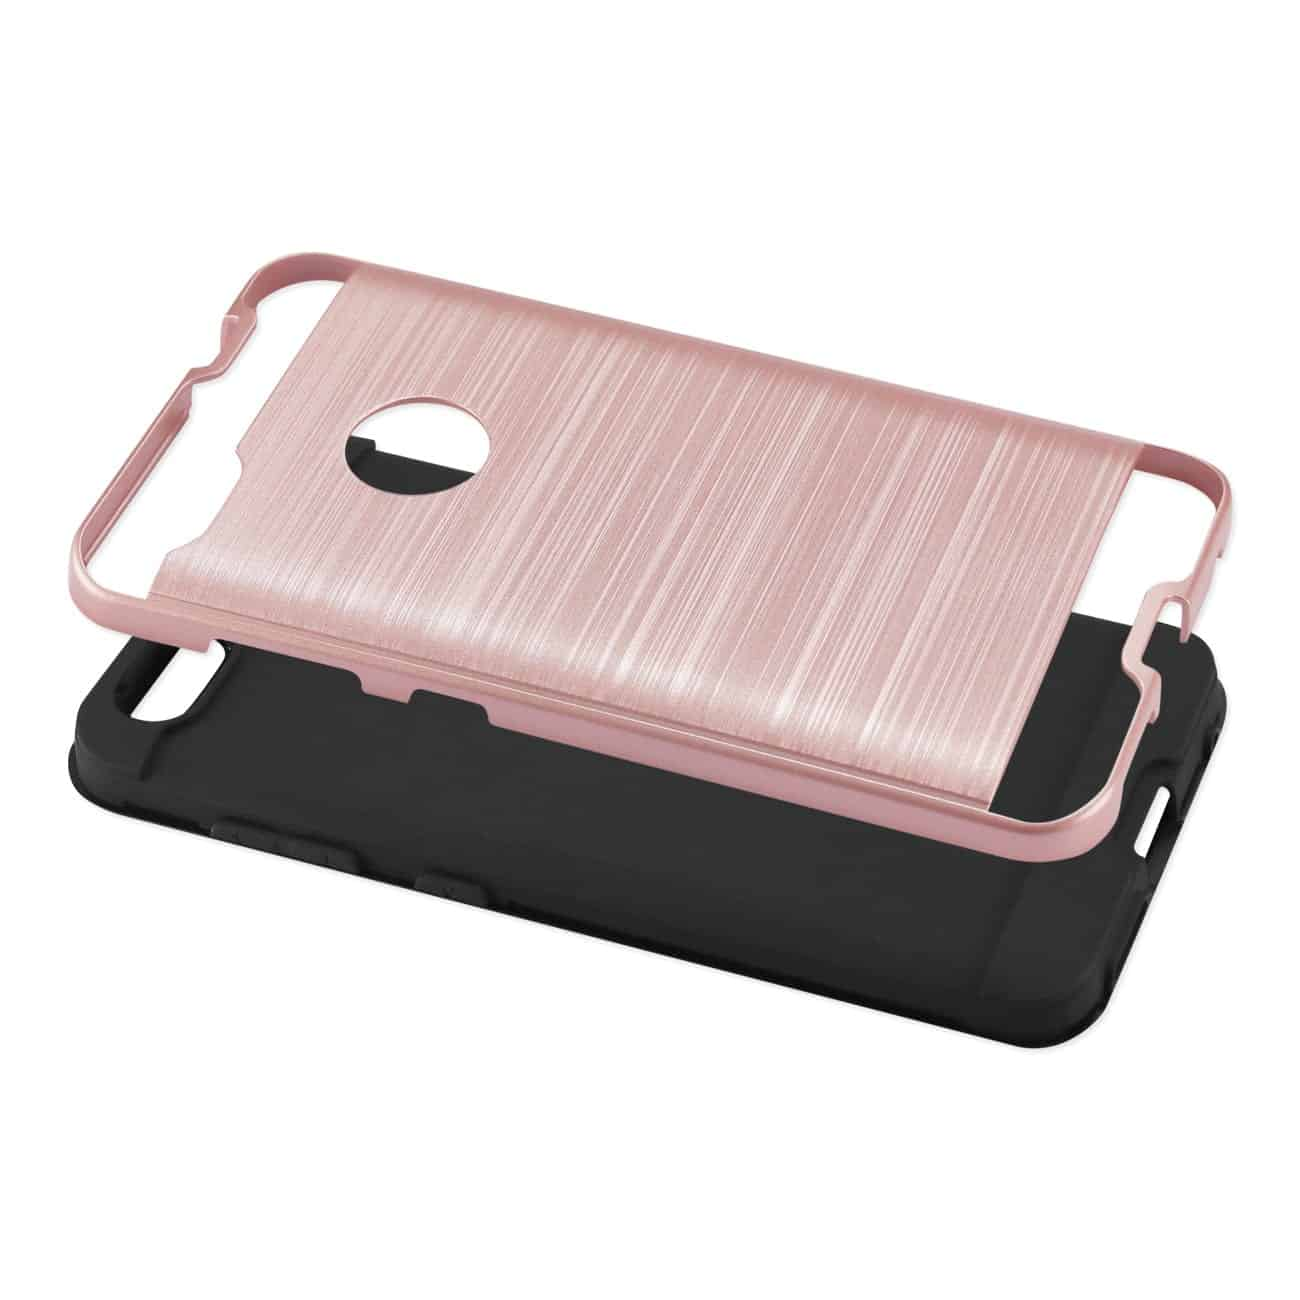 ZTE Blade X / Z965 Hybrid Metal Brushed Texture Case In Rose Gold